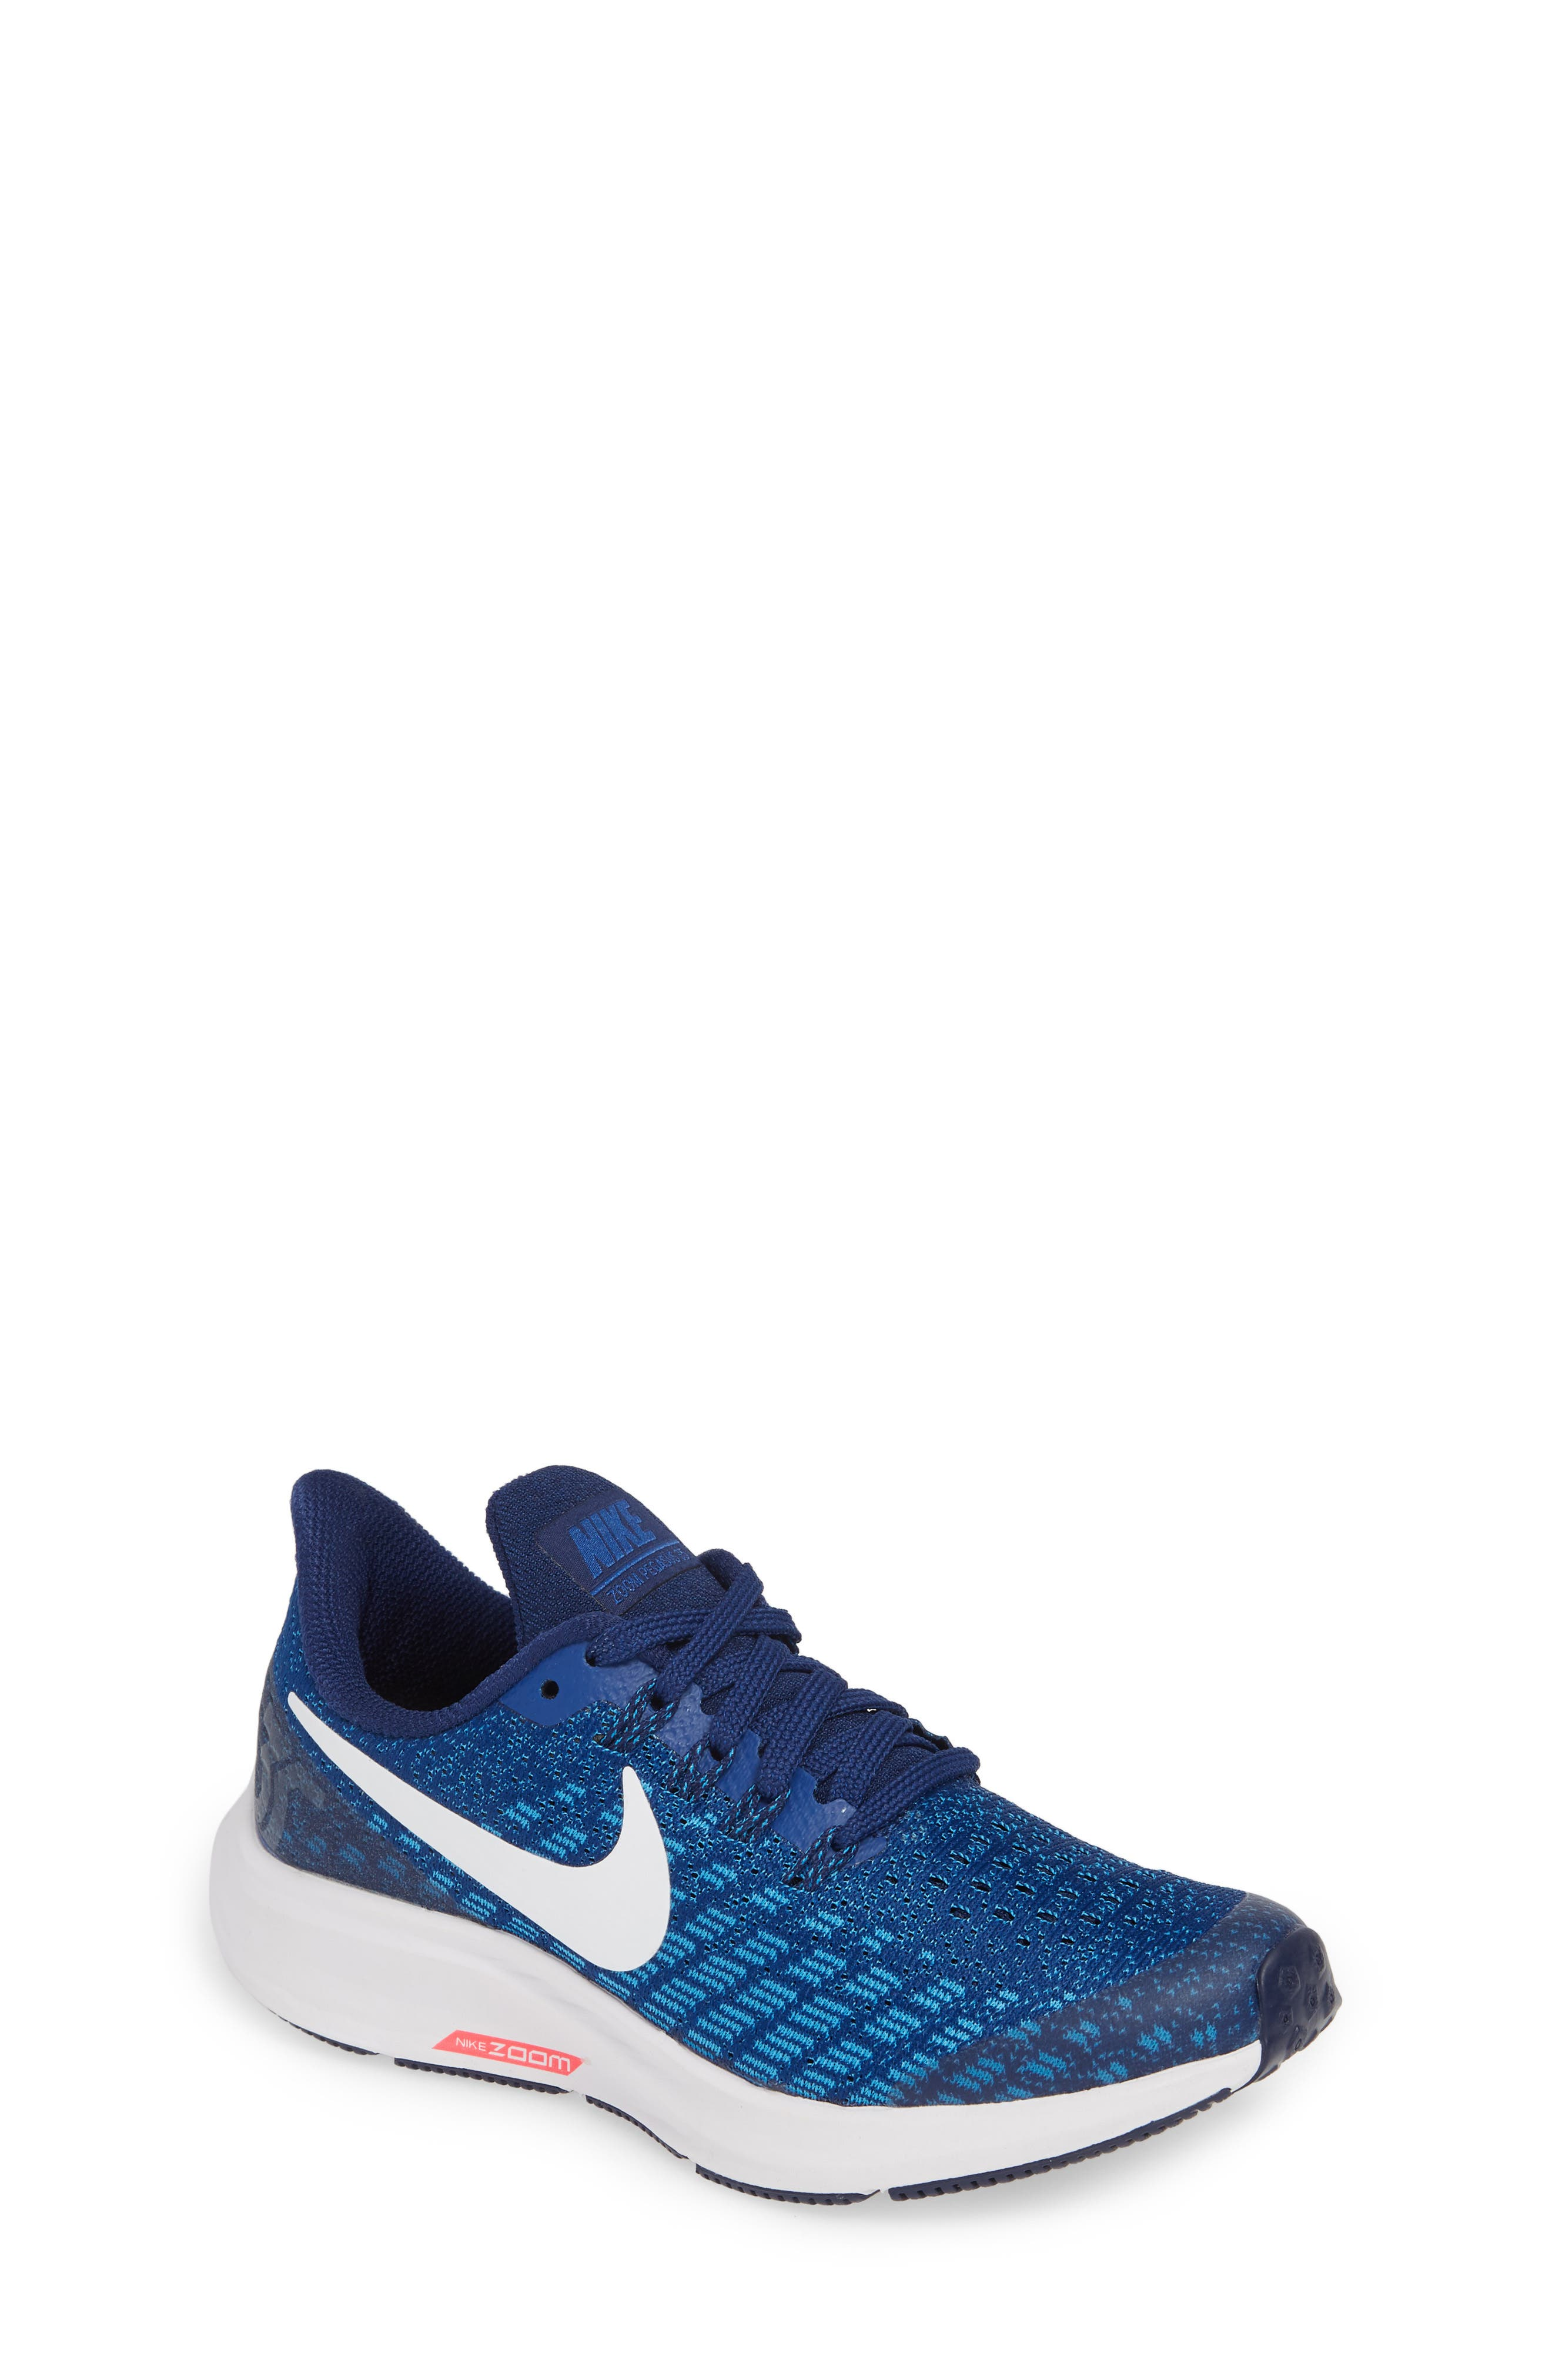 NIKE Air Zoom Pegasus 35 Sneaker, Main, color, INDIGO FORCE/ WHITE-BLUE-BLUE